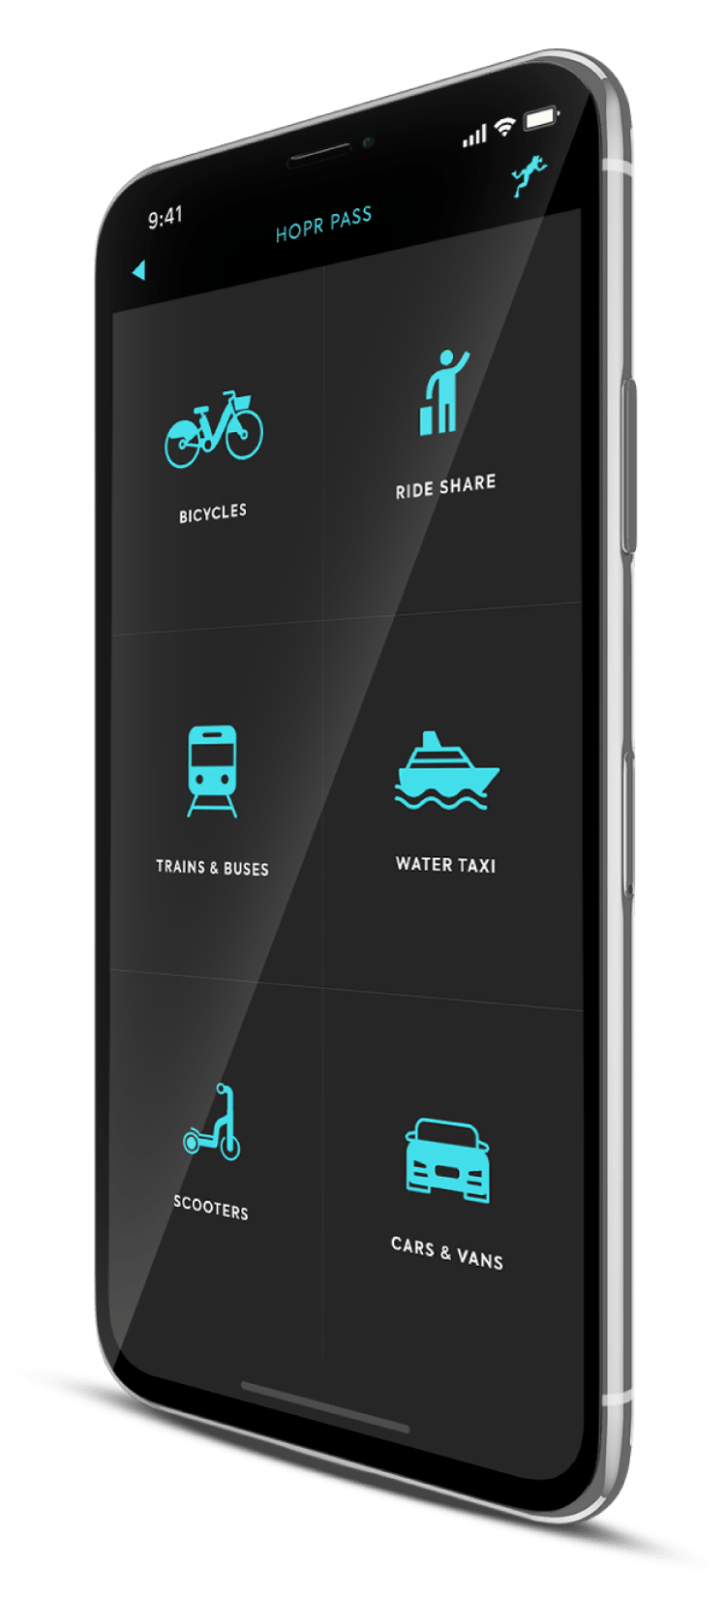 Access Bike Share, Scooter Share, Ride Share, and Public Transit with the HOPR Transit App